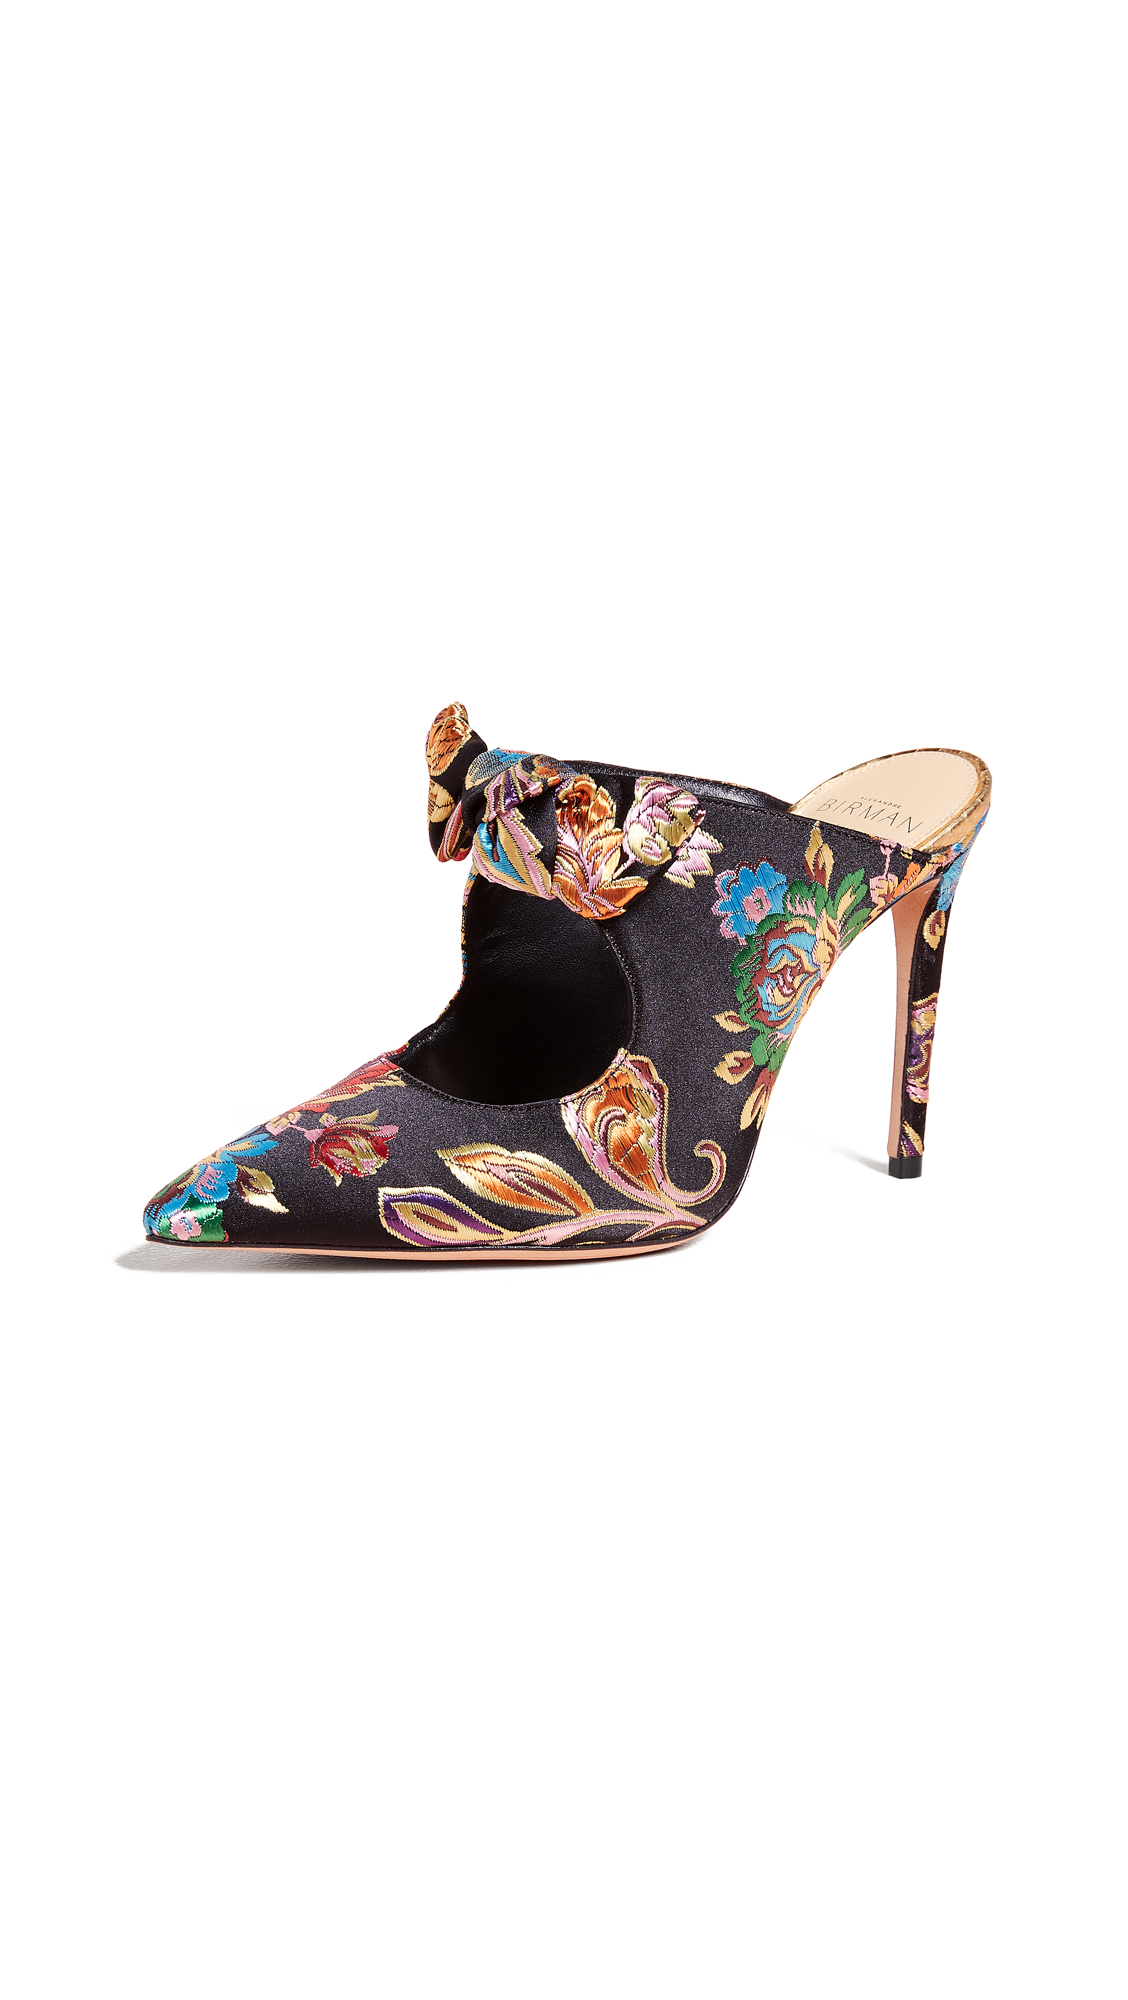 Alexandre Birman Evelyn Fab Mules - Multi Floral/Golden